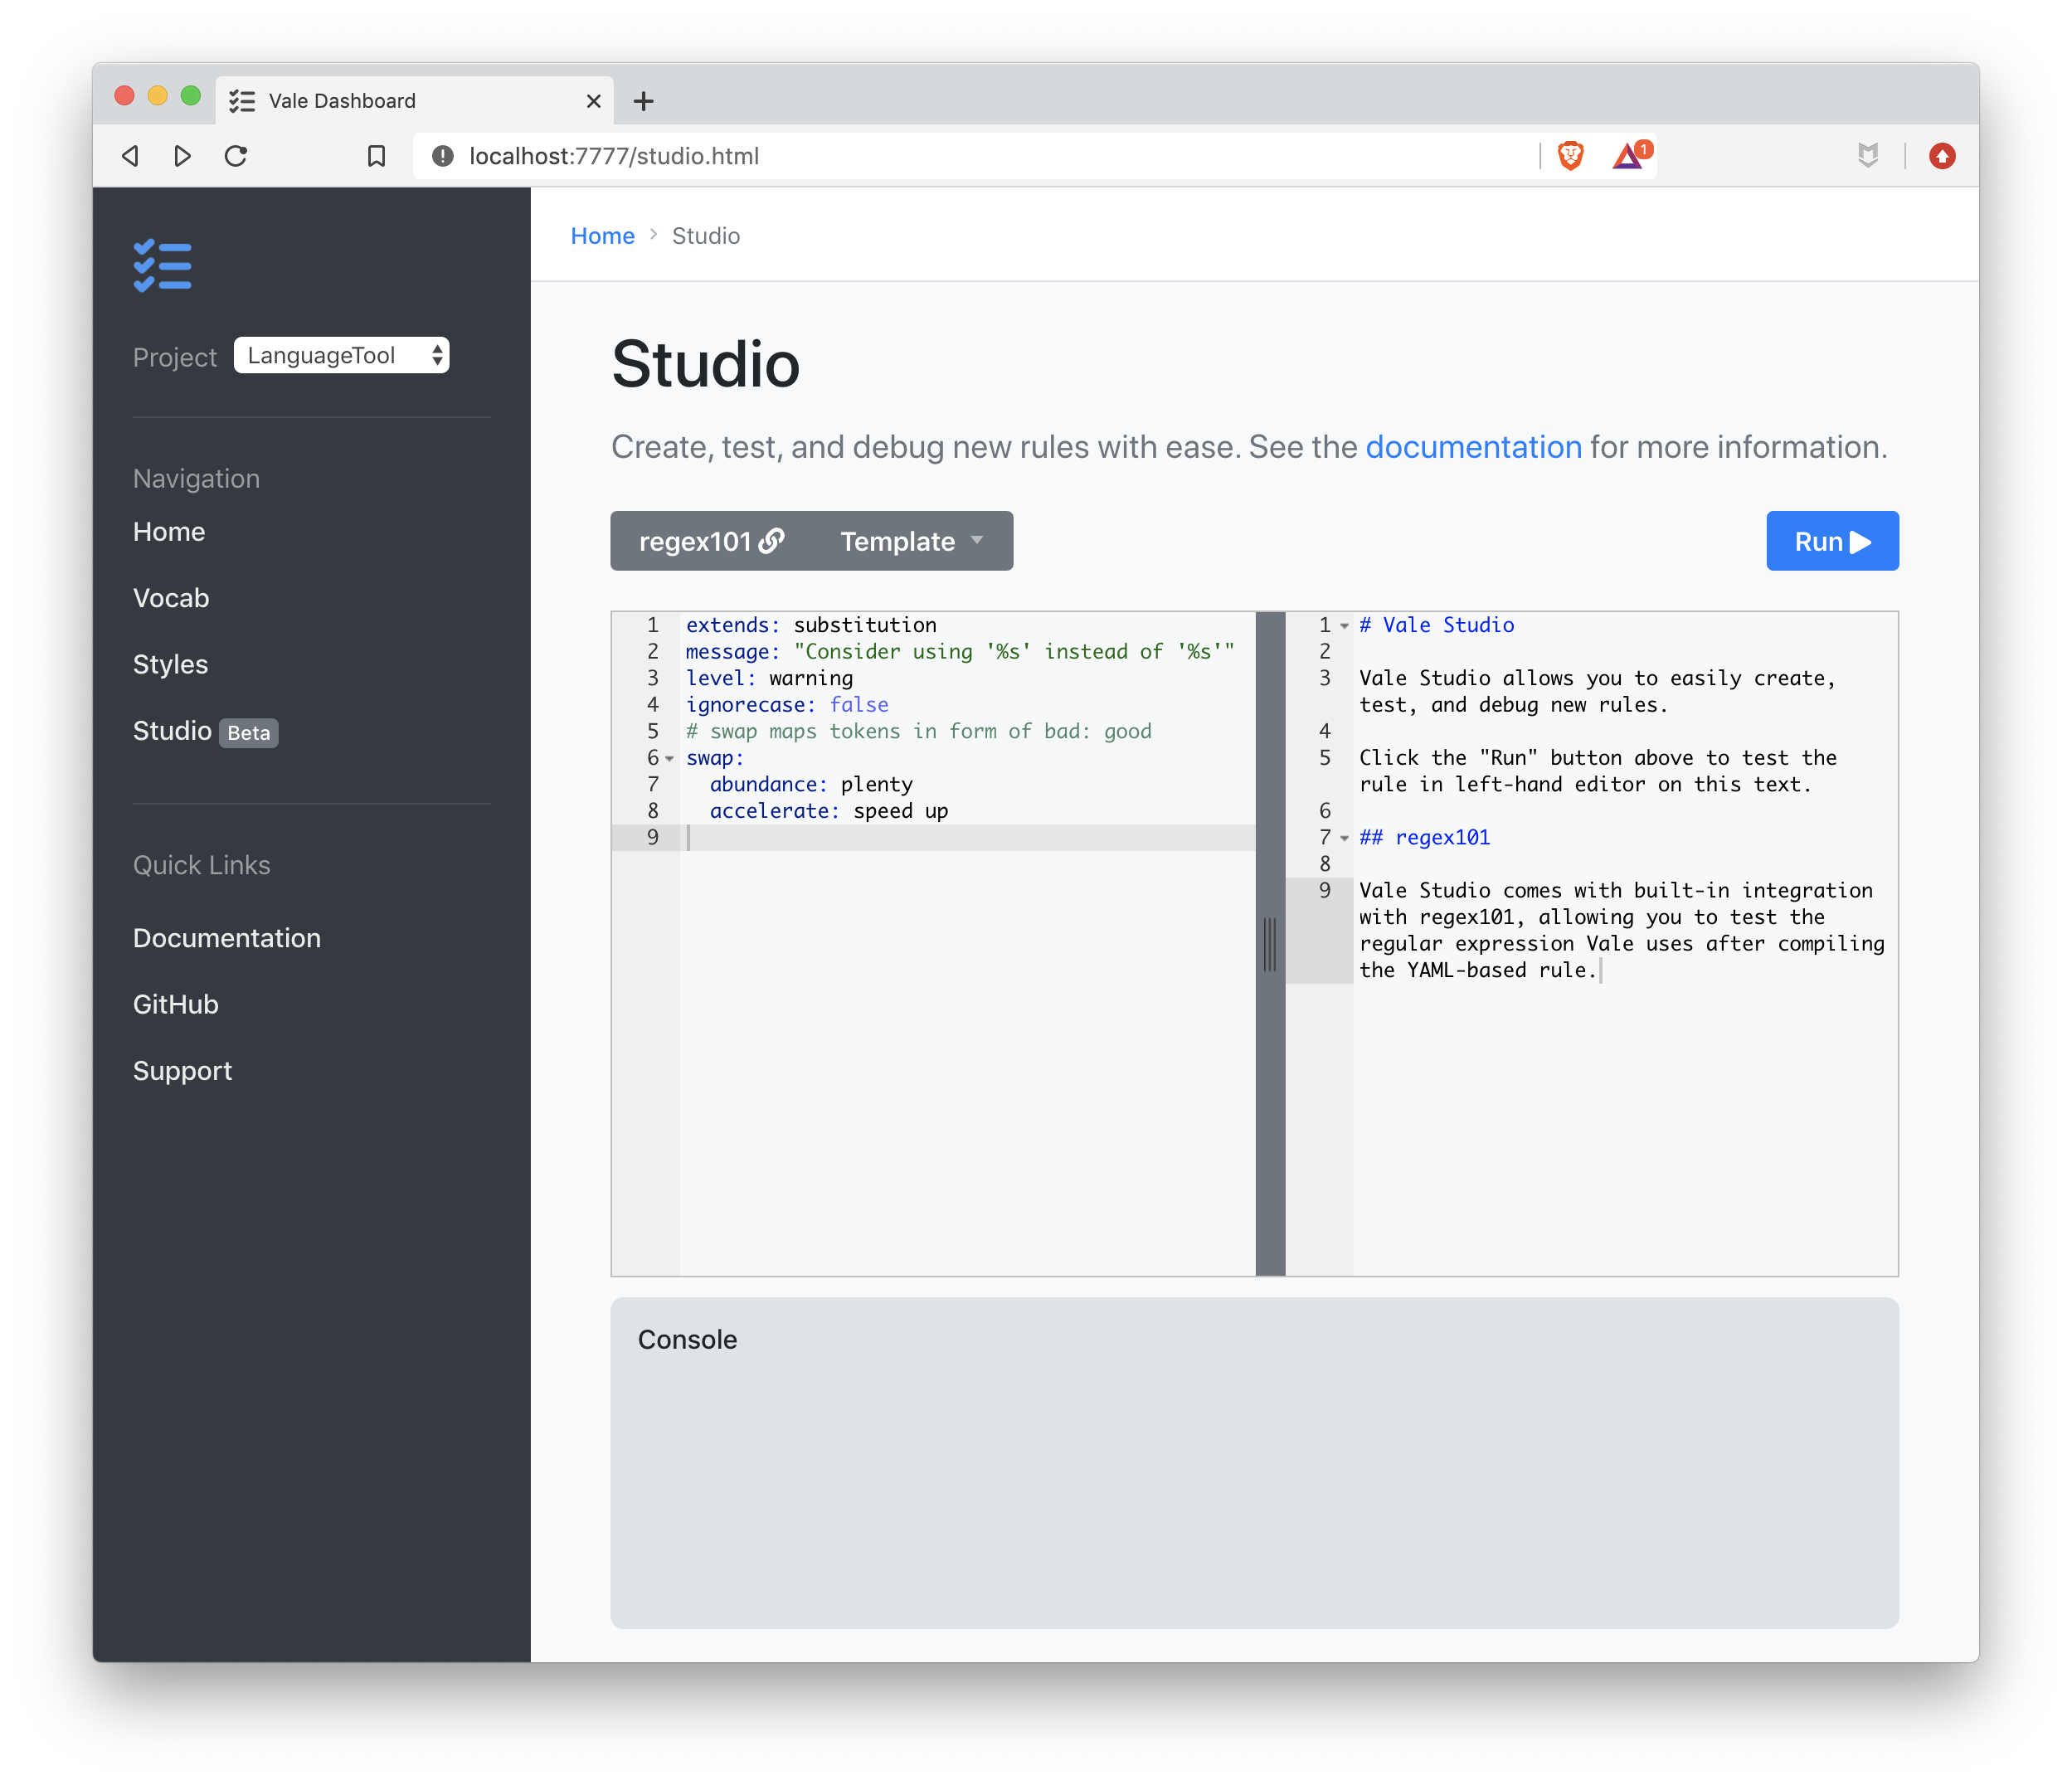 A screenshot of the dashboard's Studio page.